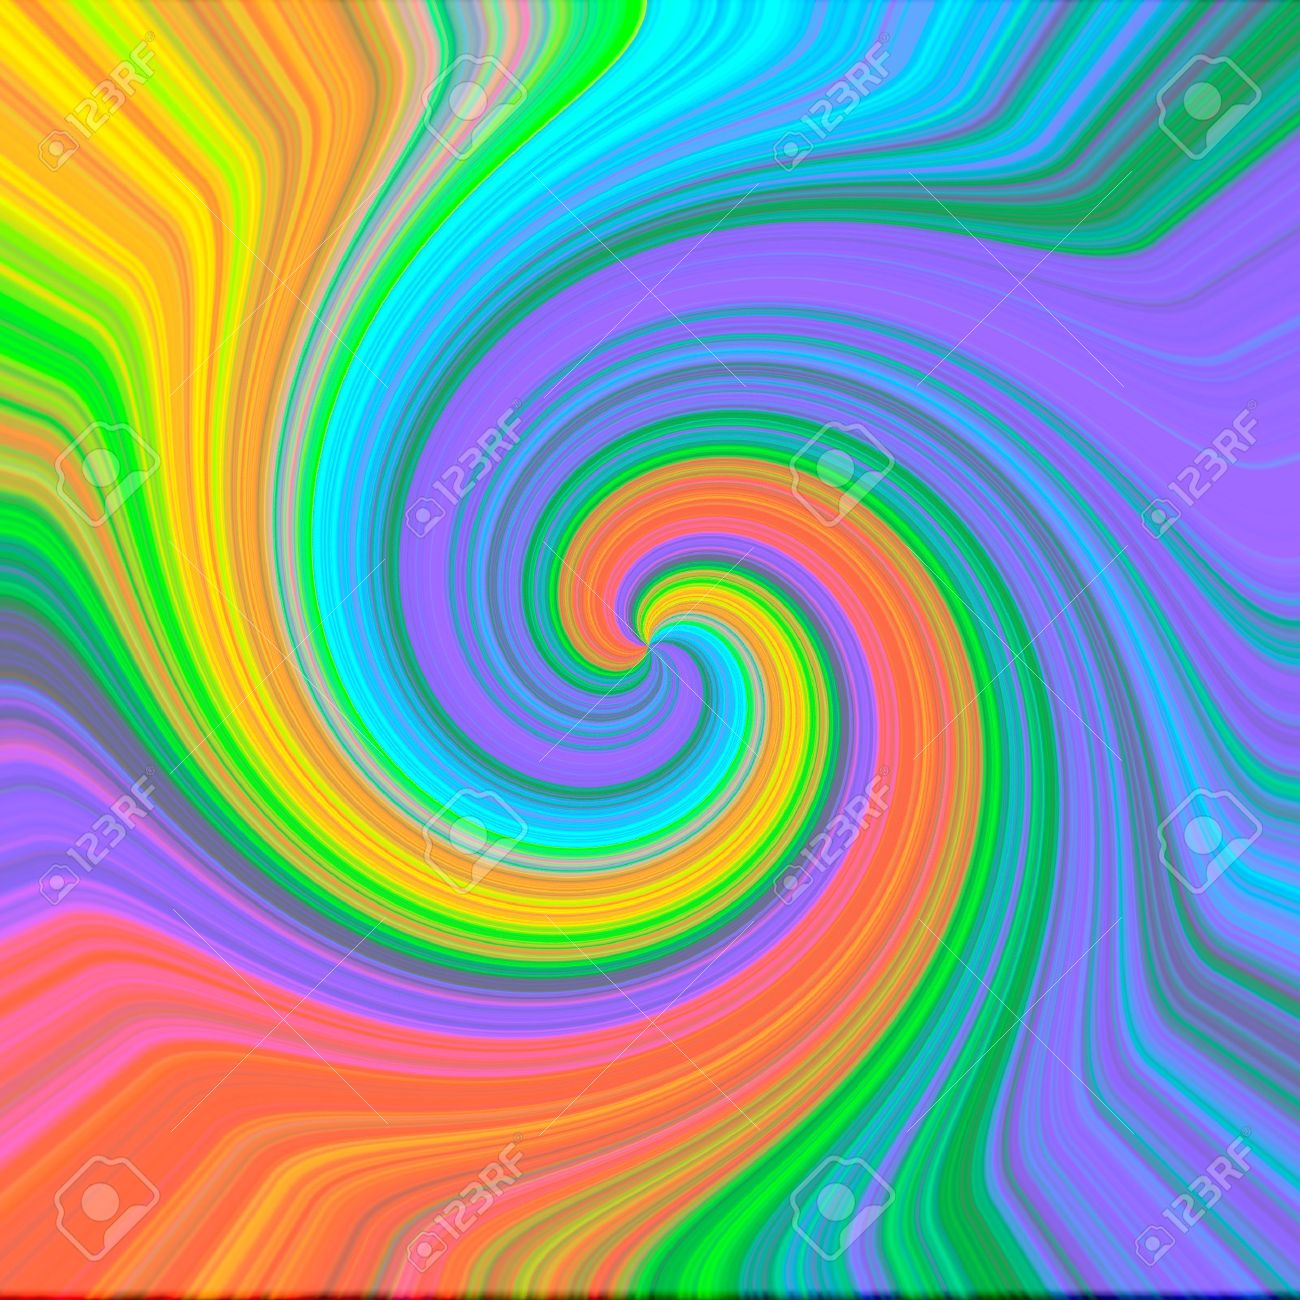 Colorful Psychedelic Background Illustration